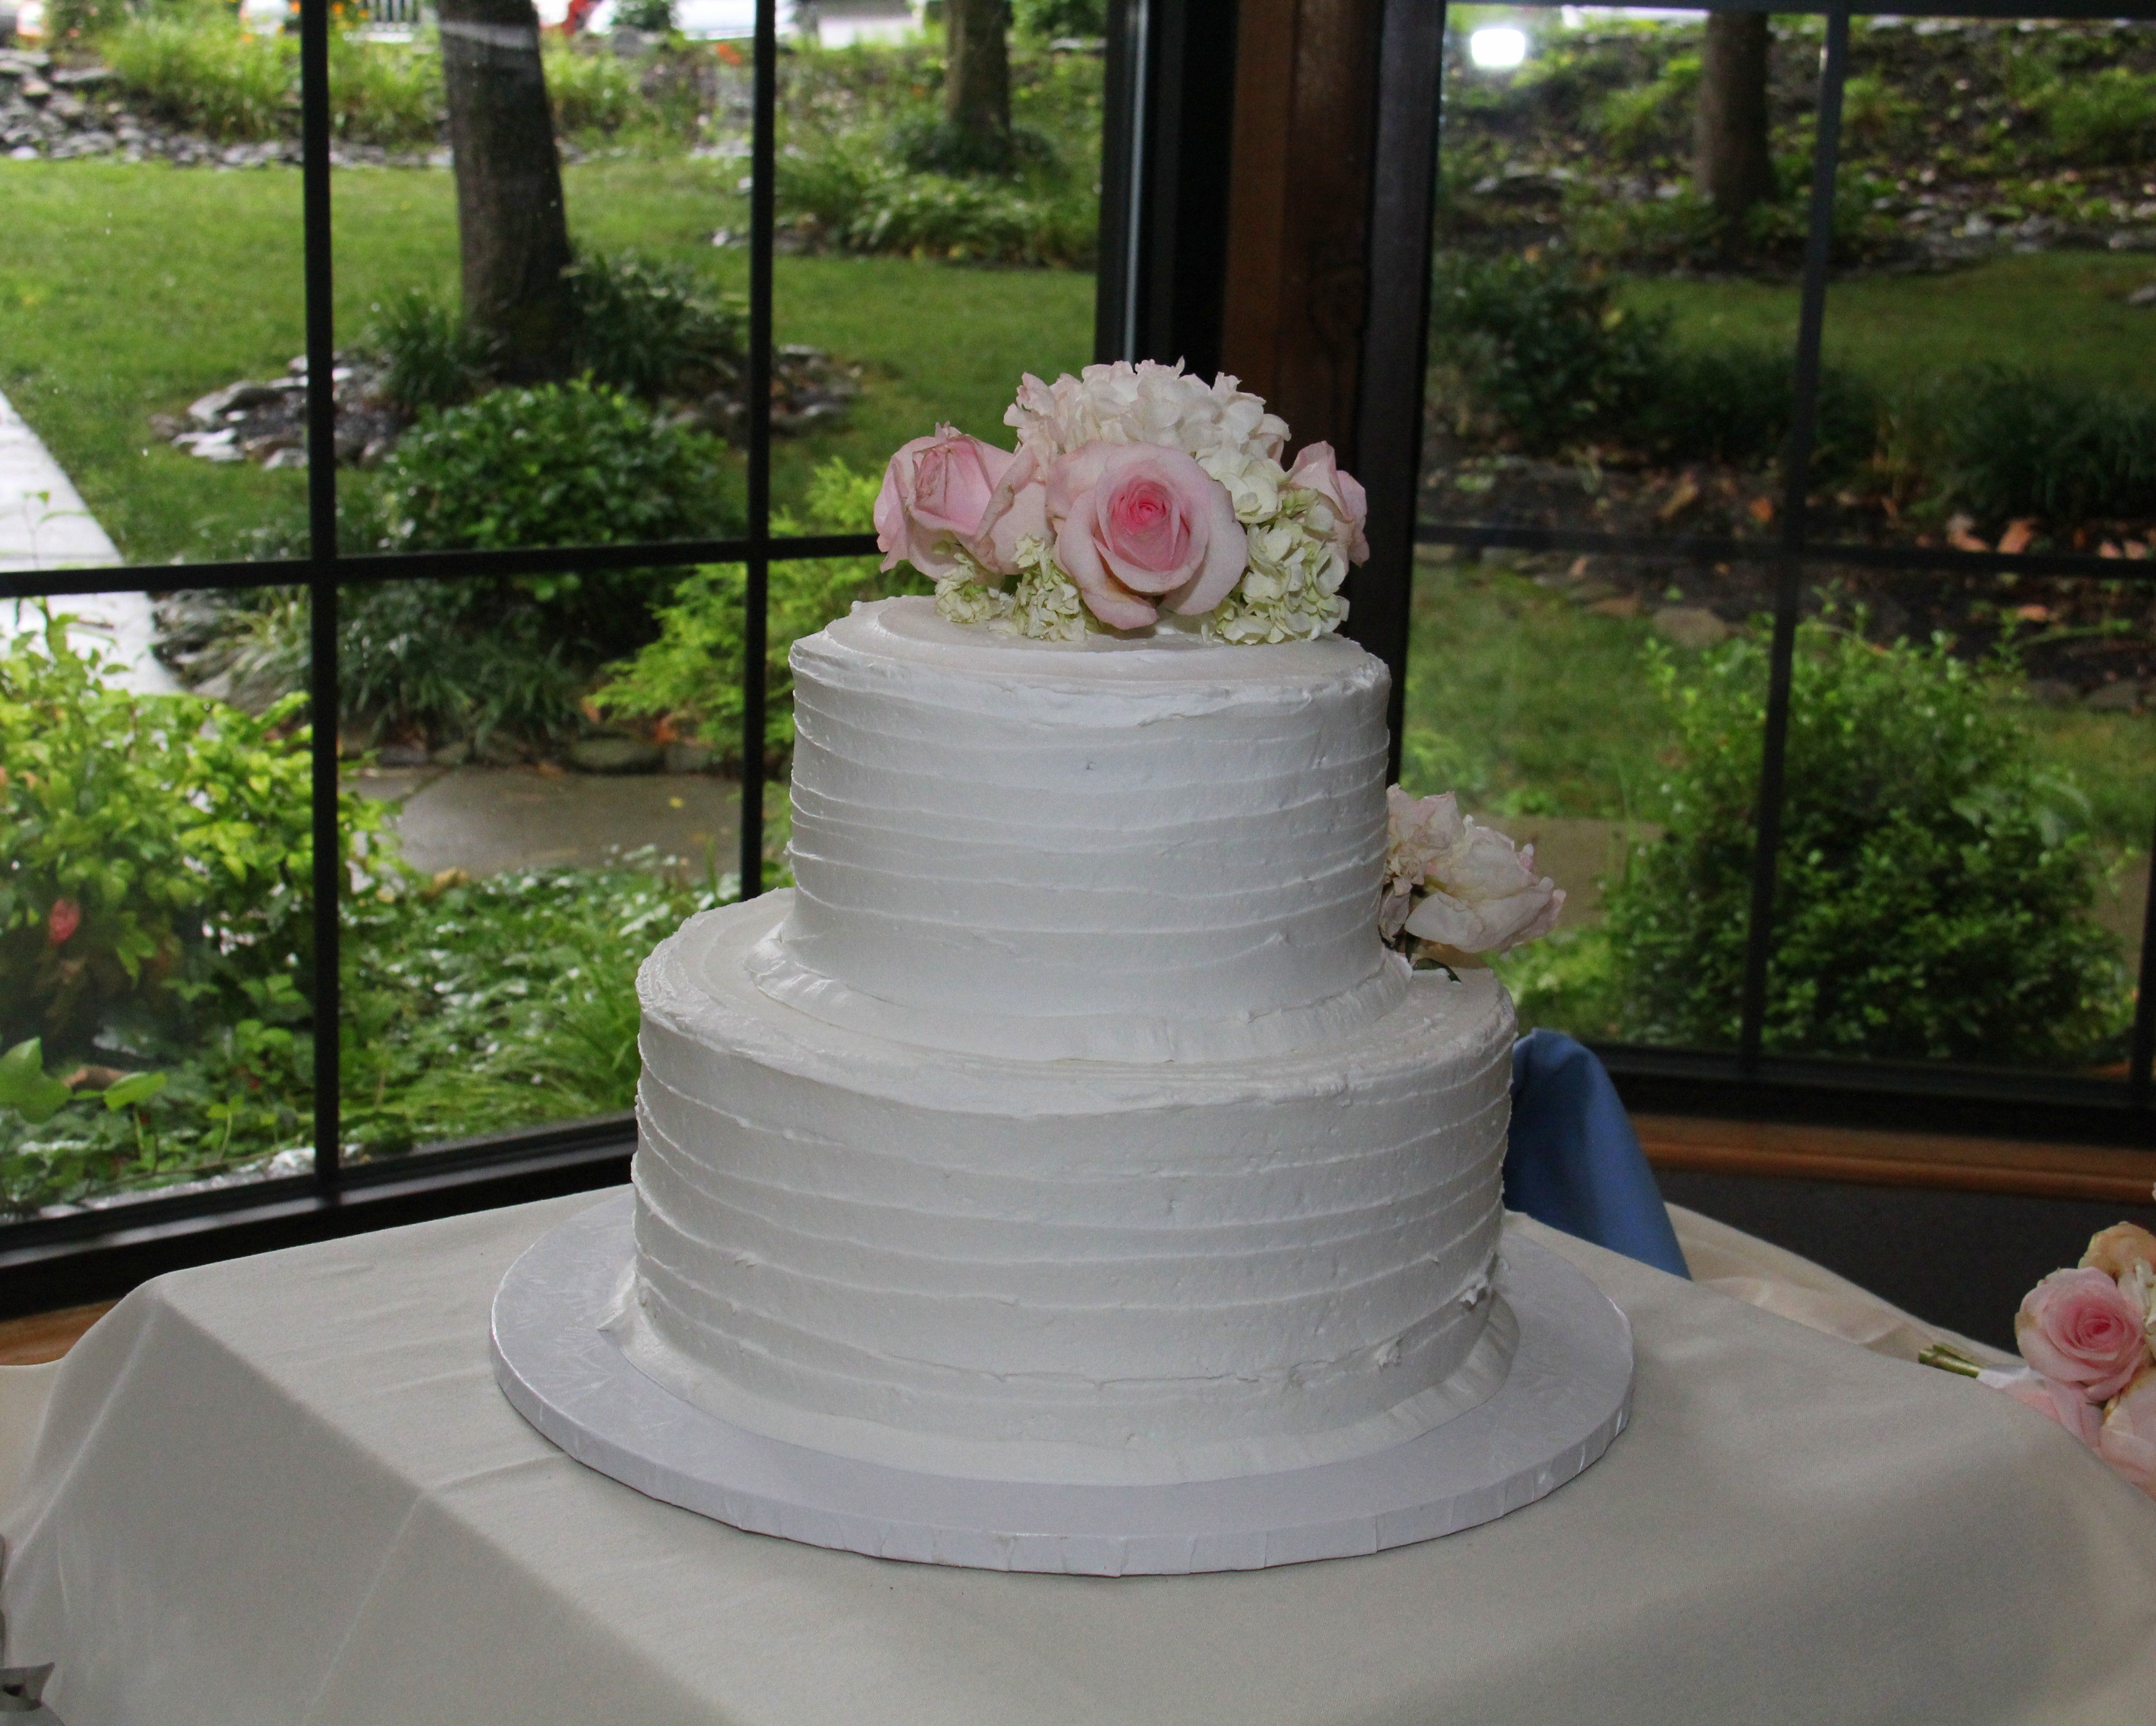 Textured Round 2 Tier Butter Cream Iced Wedding Cake With Fresh Floral Topper